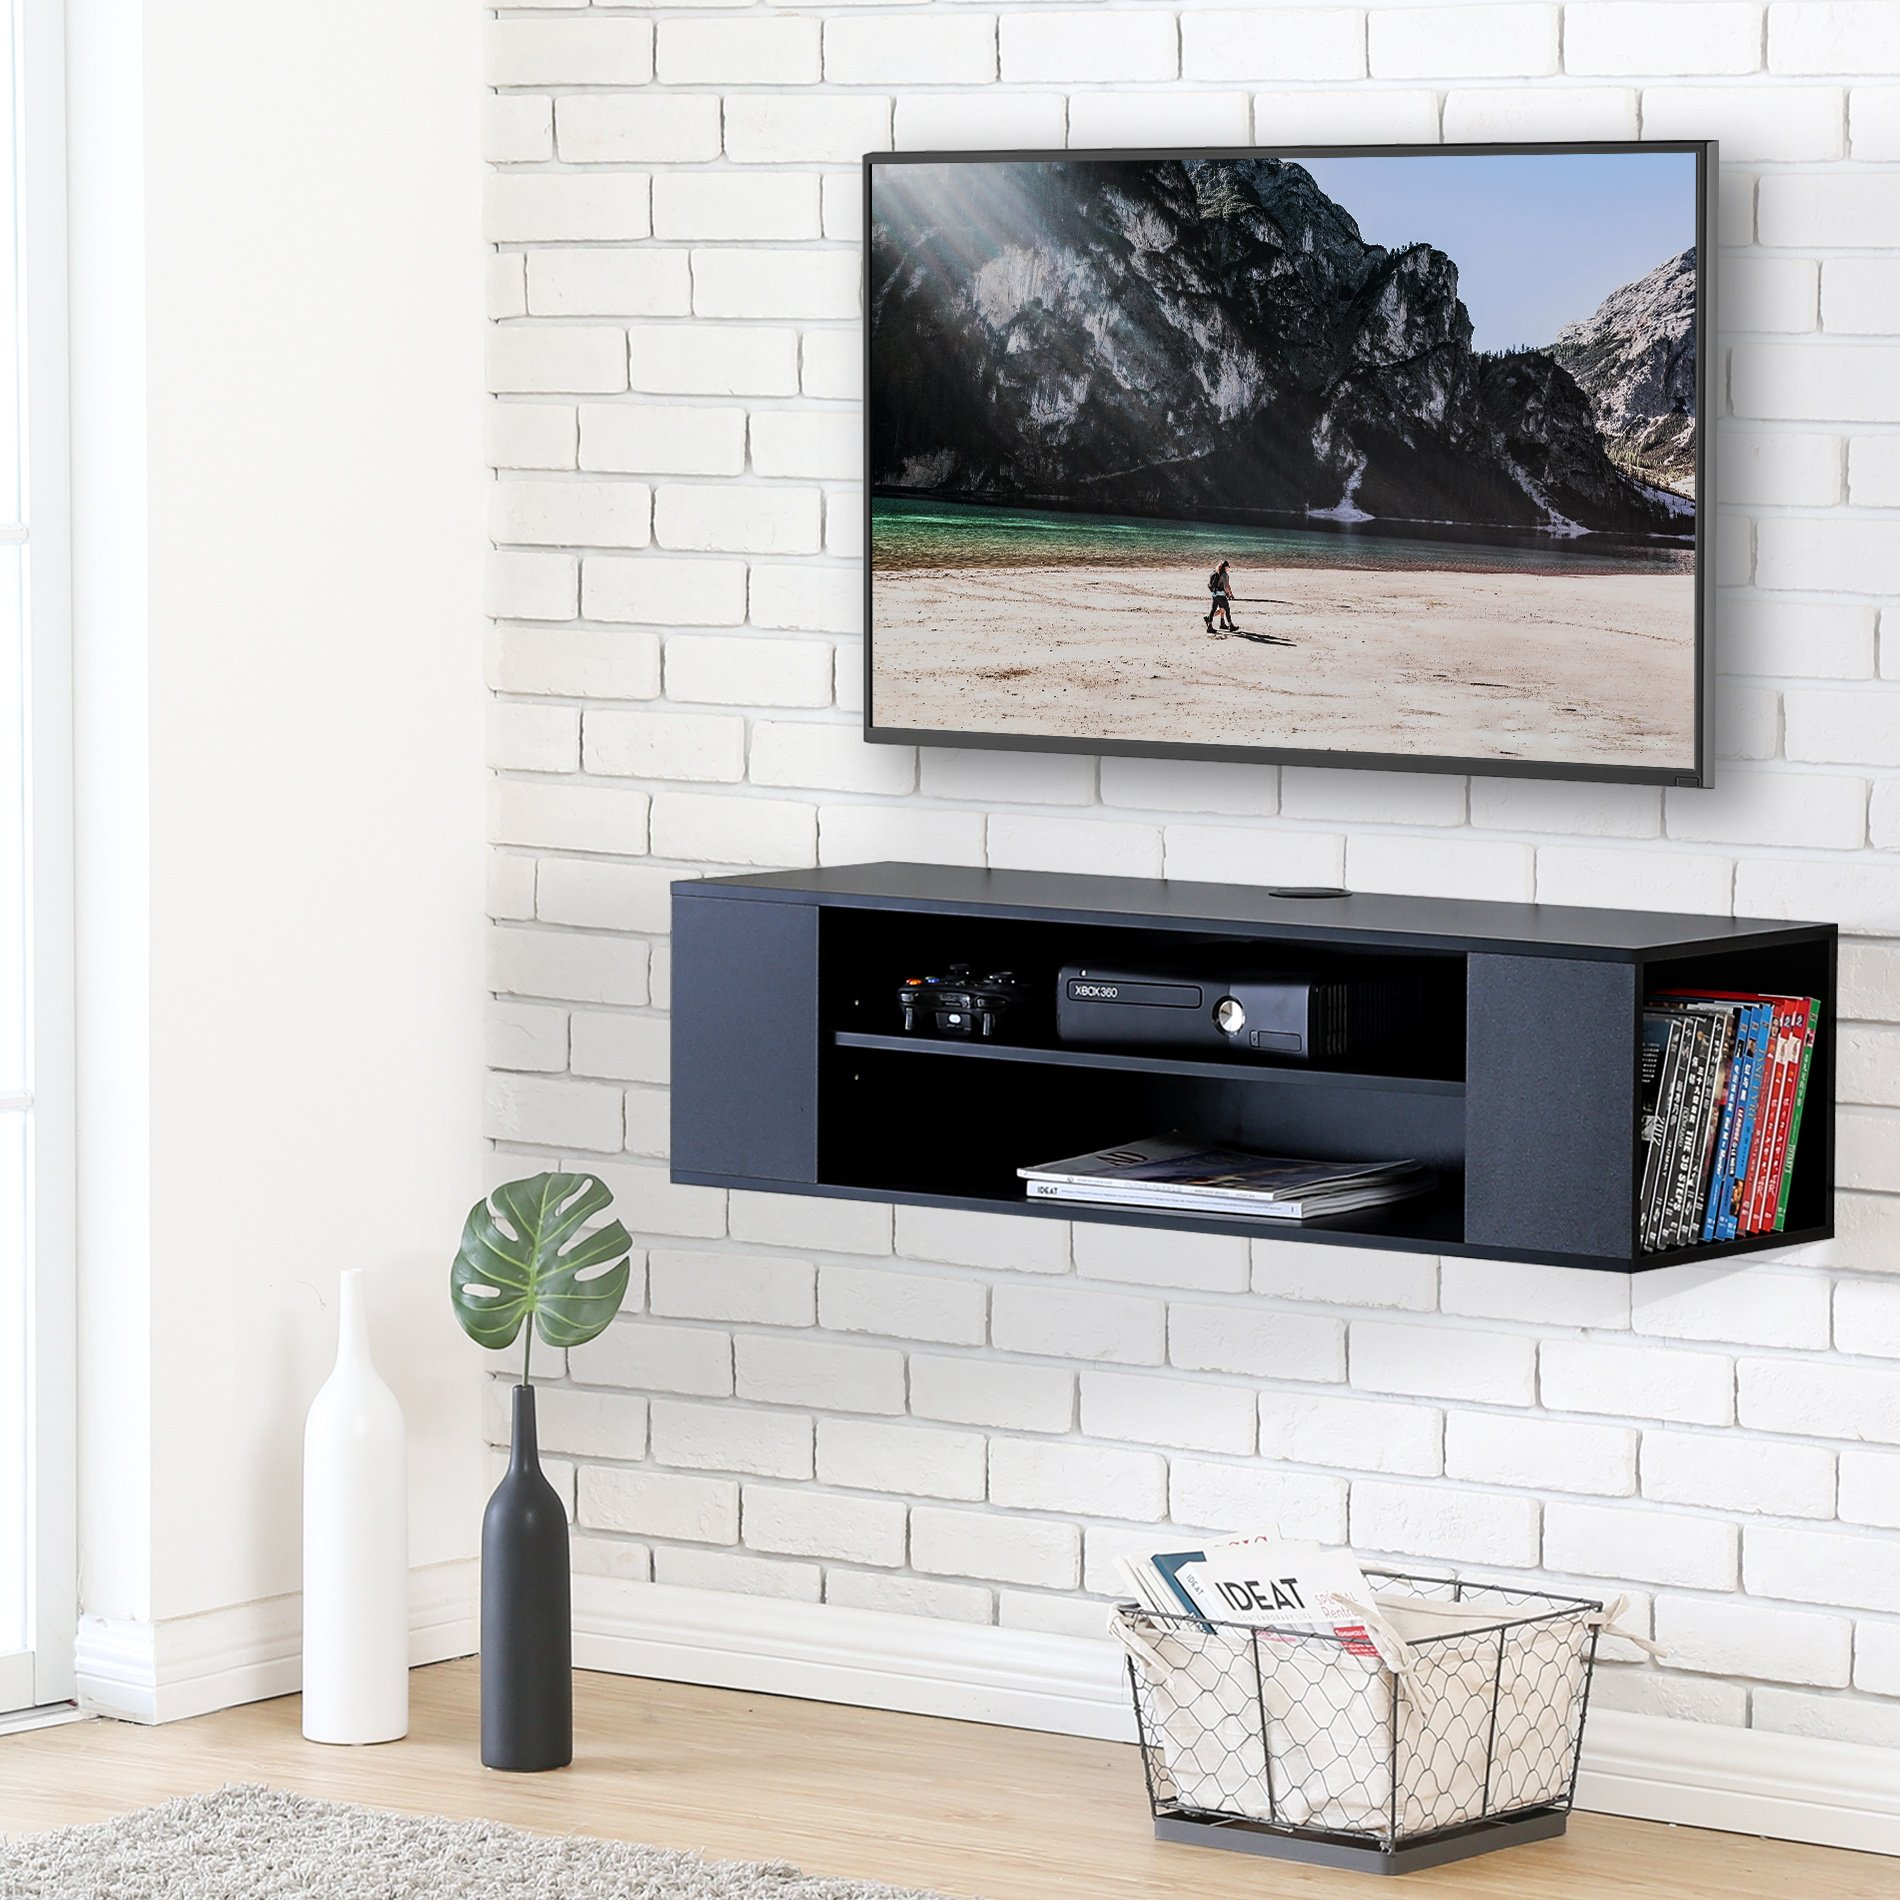 FITUEYES Wall Mounted Audio/Video Black wood grain for xbox one/PS4/vizio/Sumsung/sony TV DS210002WB